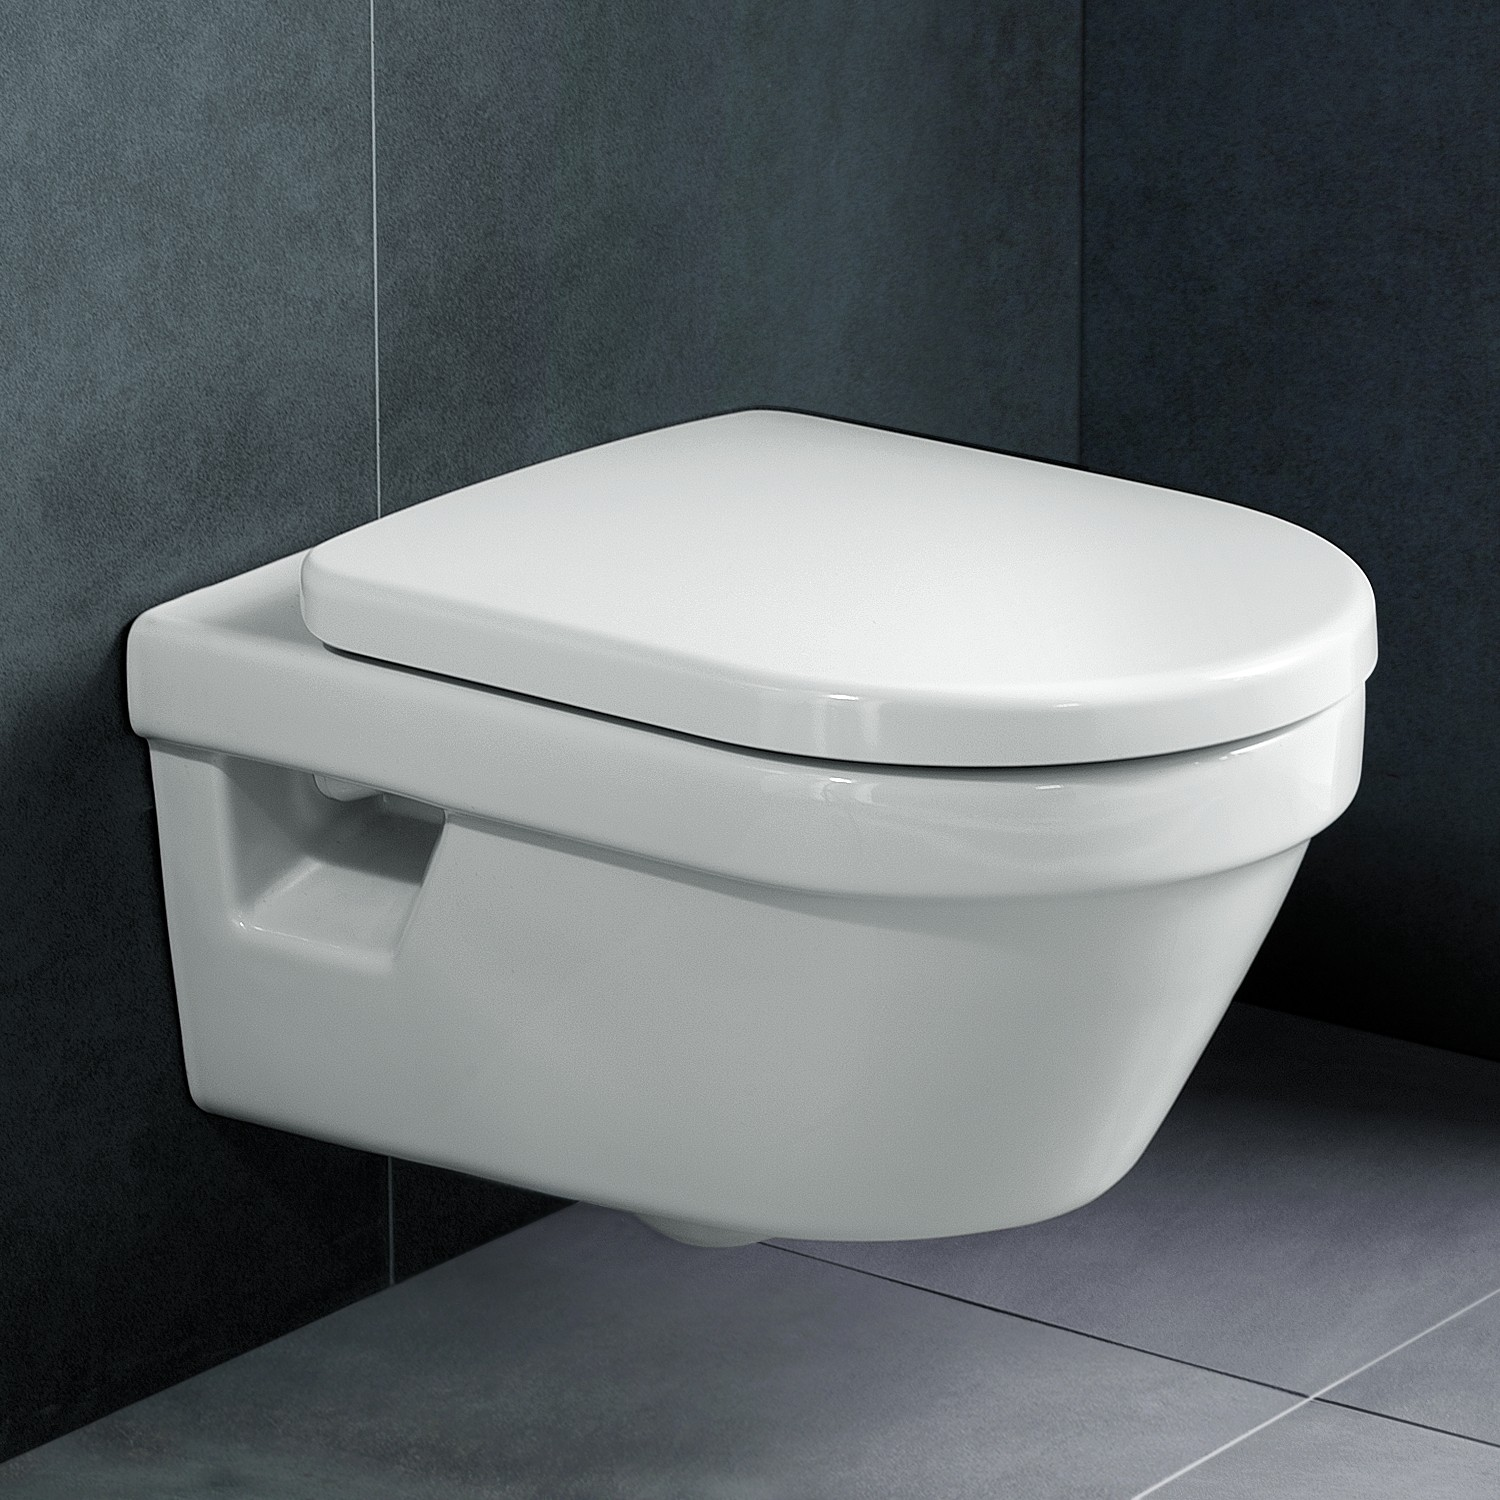 villeroy boch architectura wc sp lrandlos directflush wc